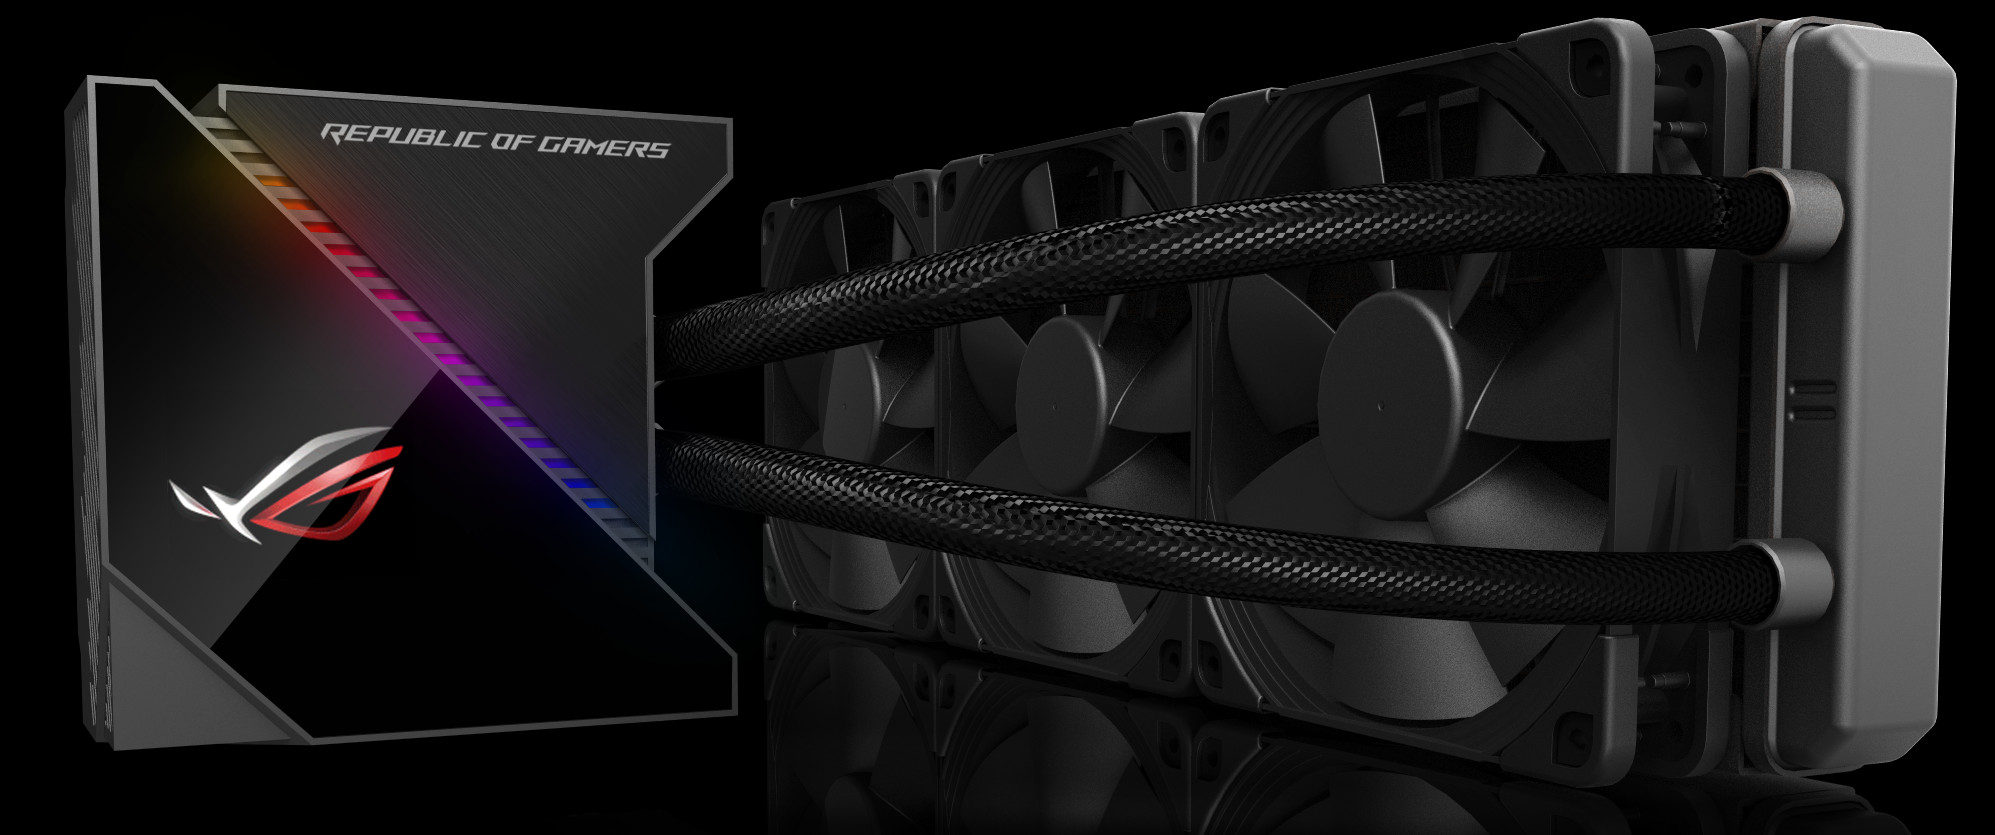 Choosing the right AIO cooler for your build: your guide to